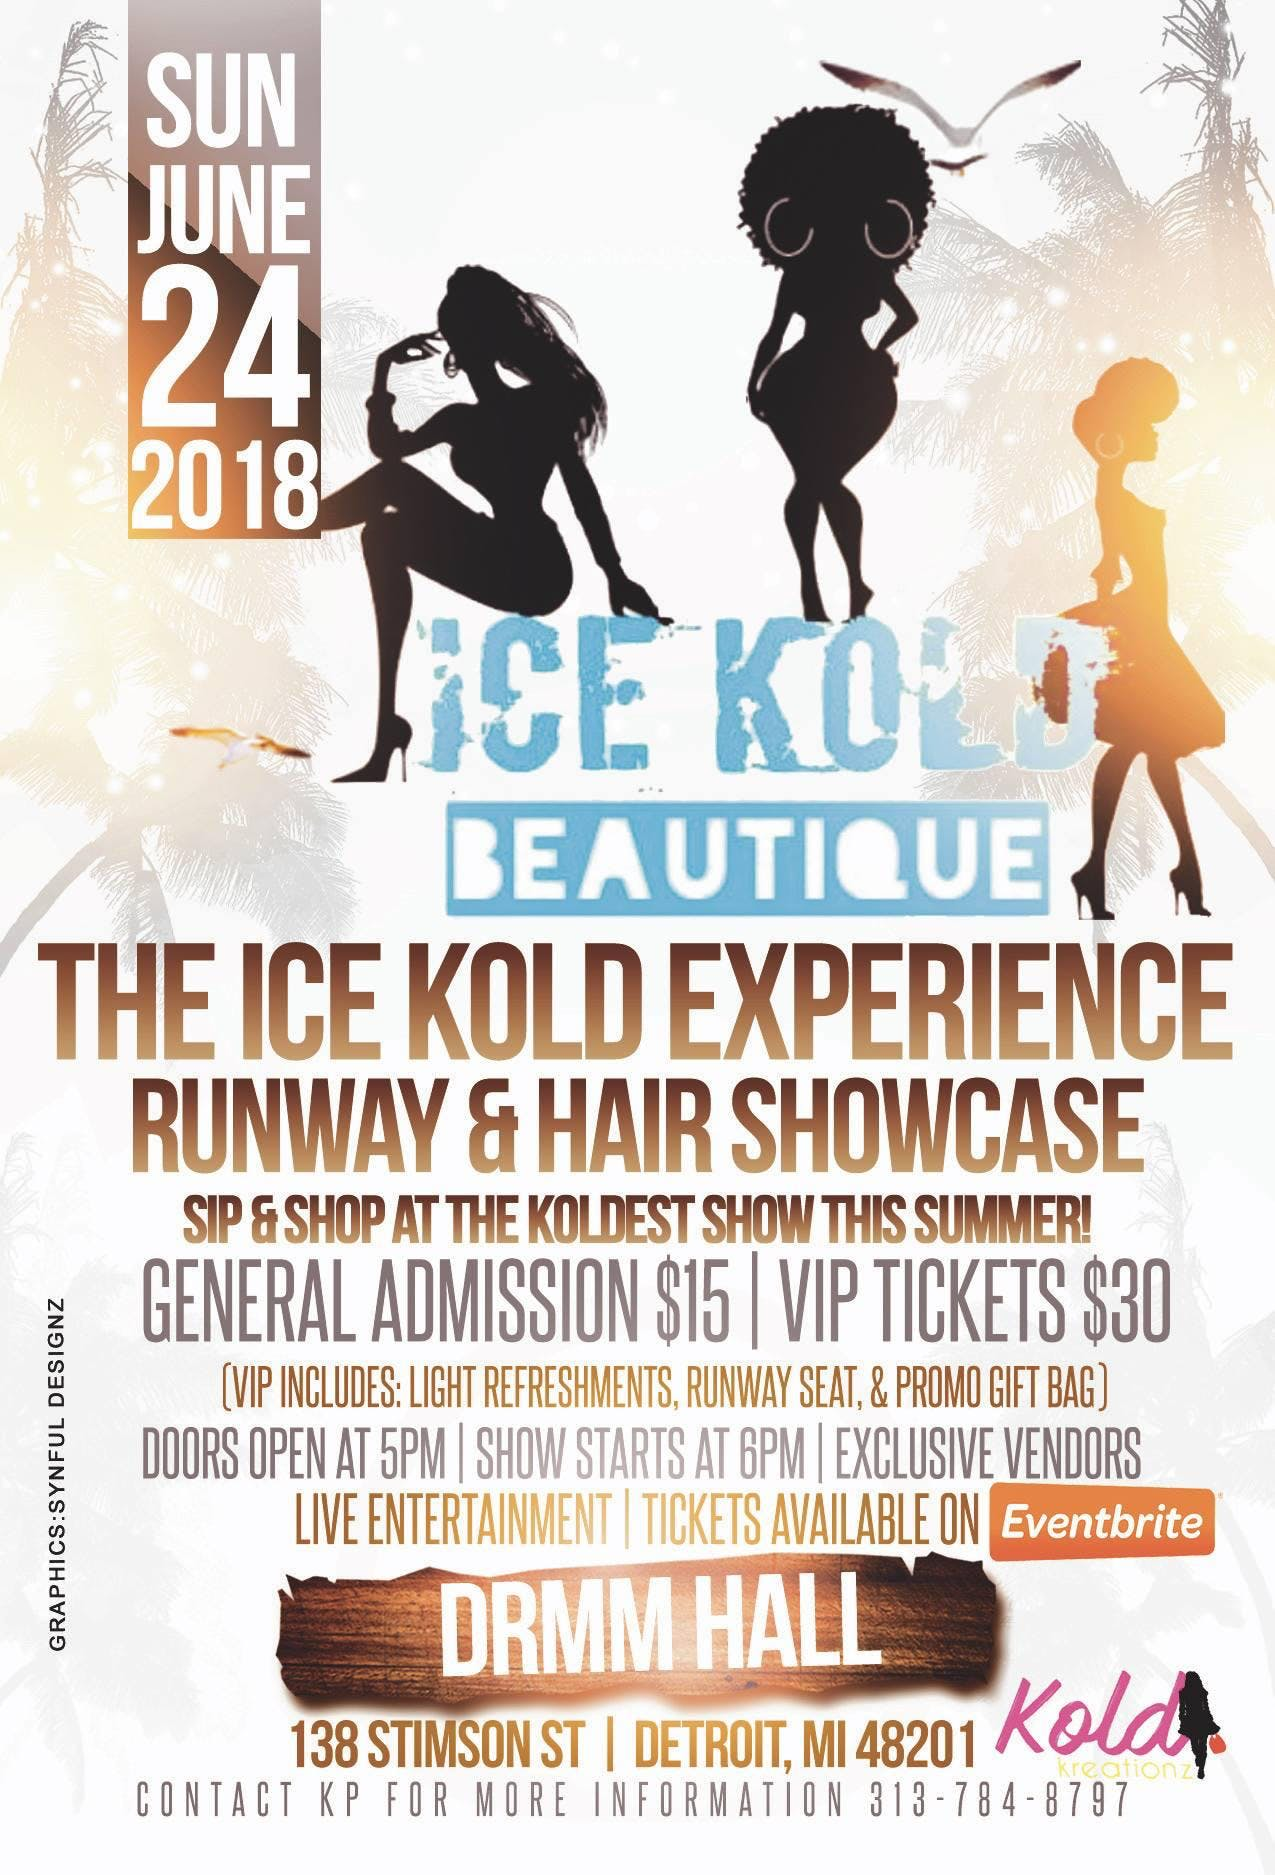 The Ice KOLD Experience